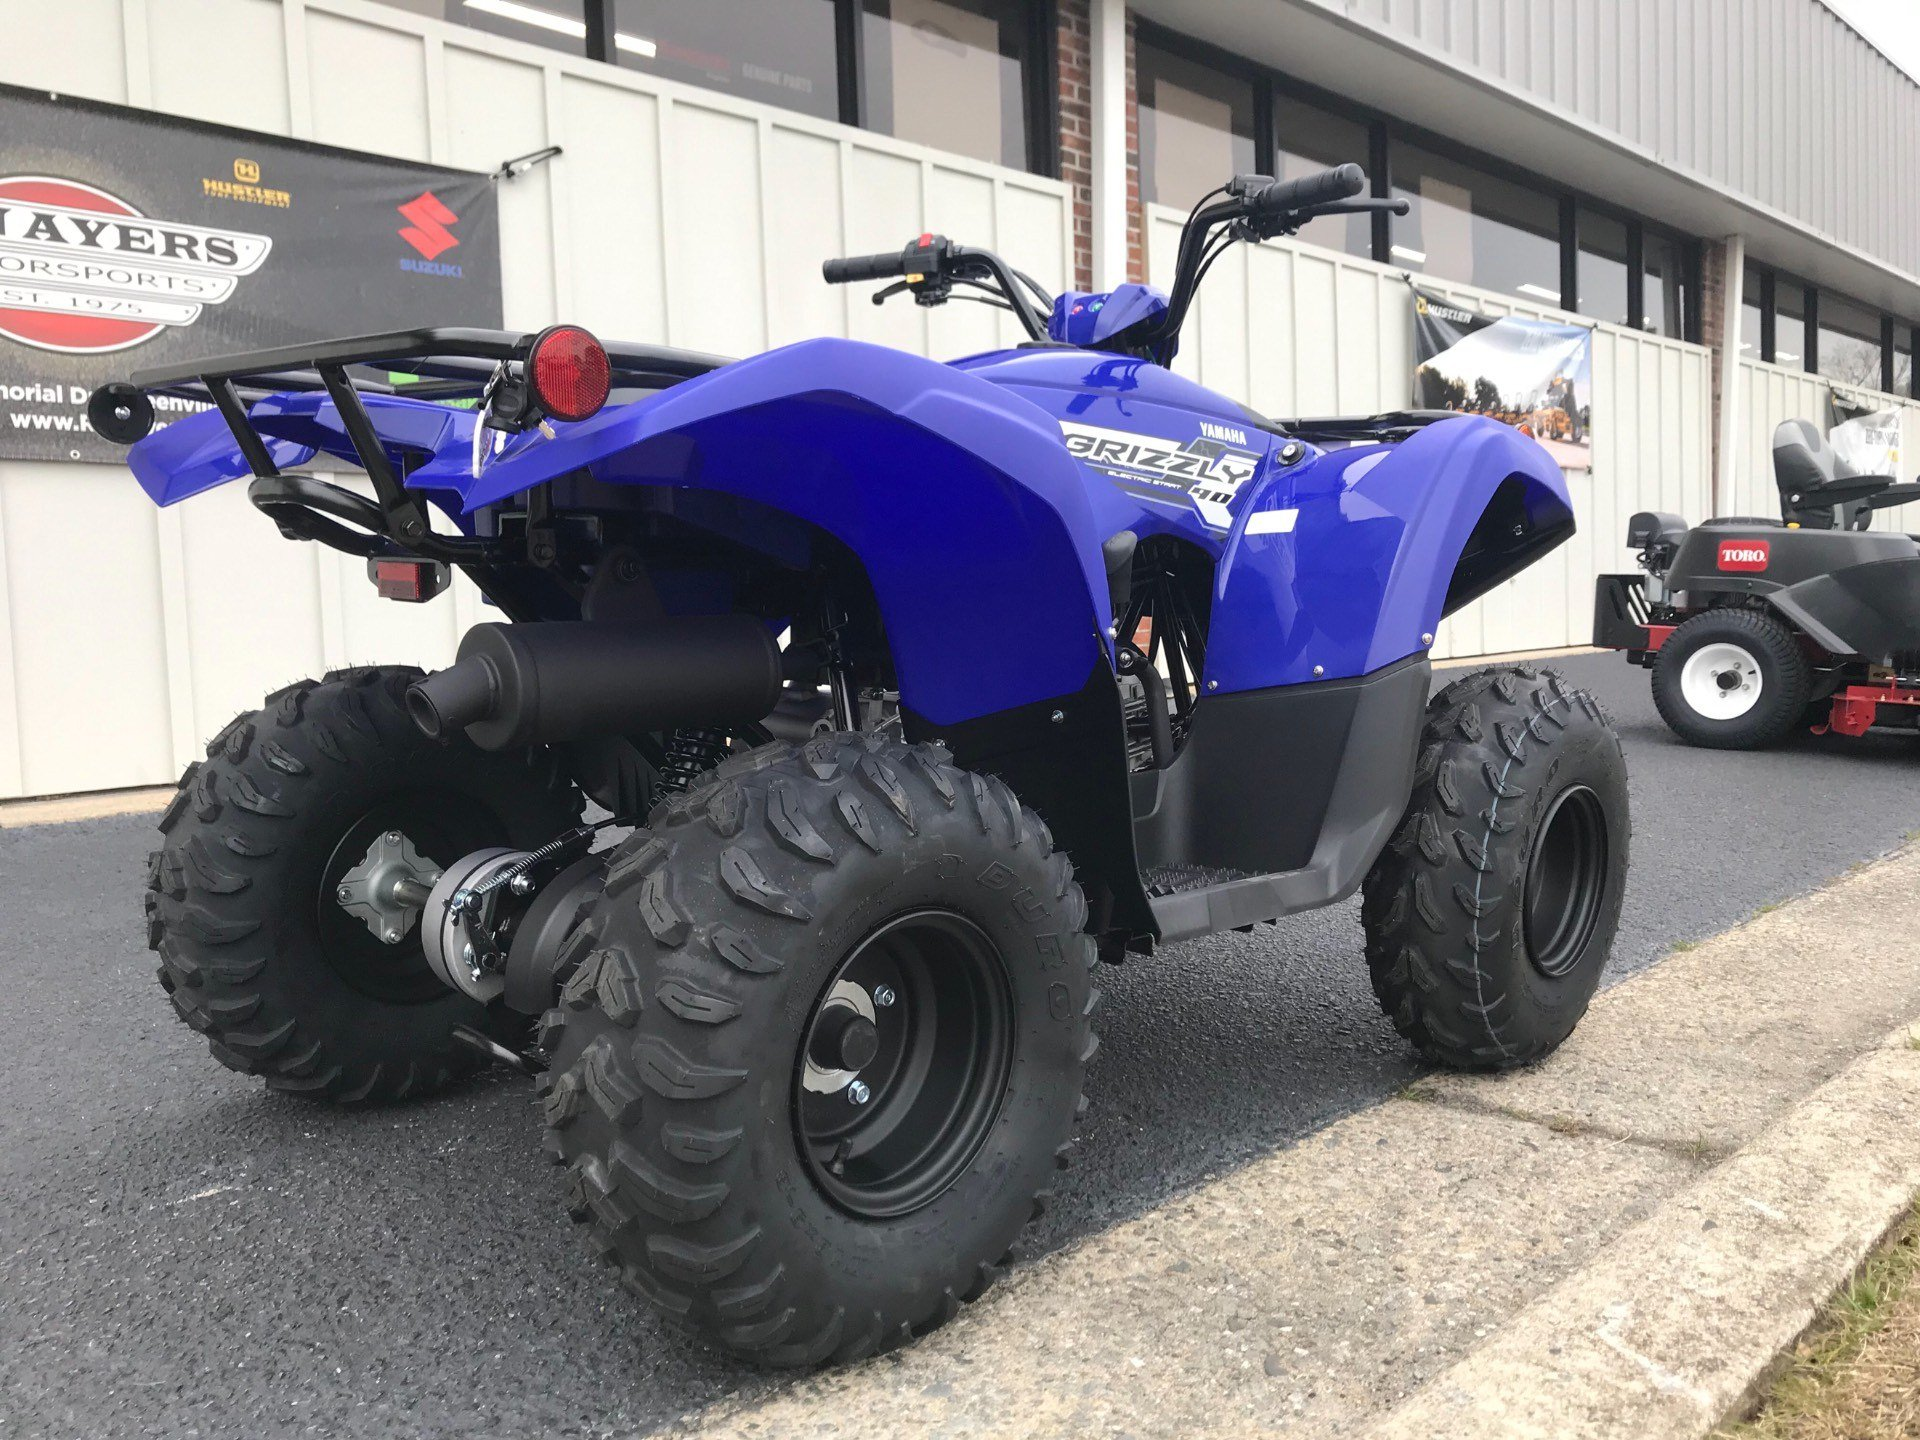 2019 Yamaha Grizzly 90 in Greenville, North Carolina - Photo 10